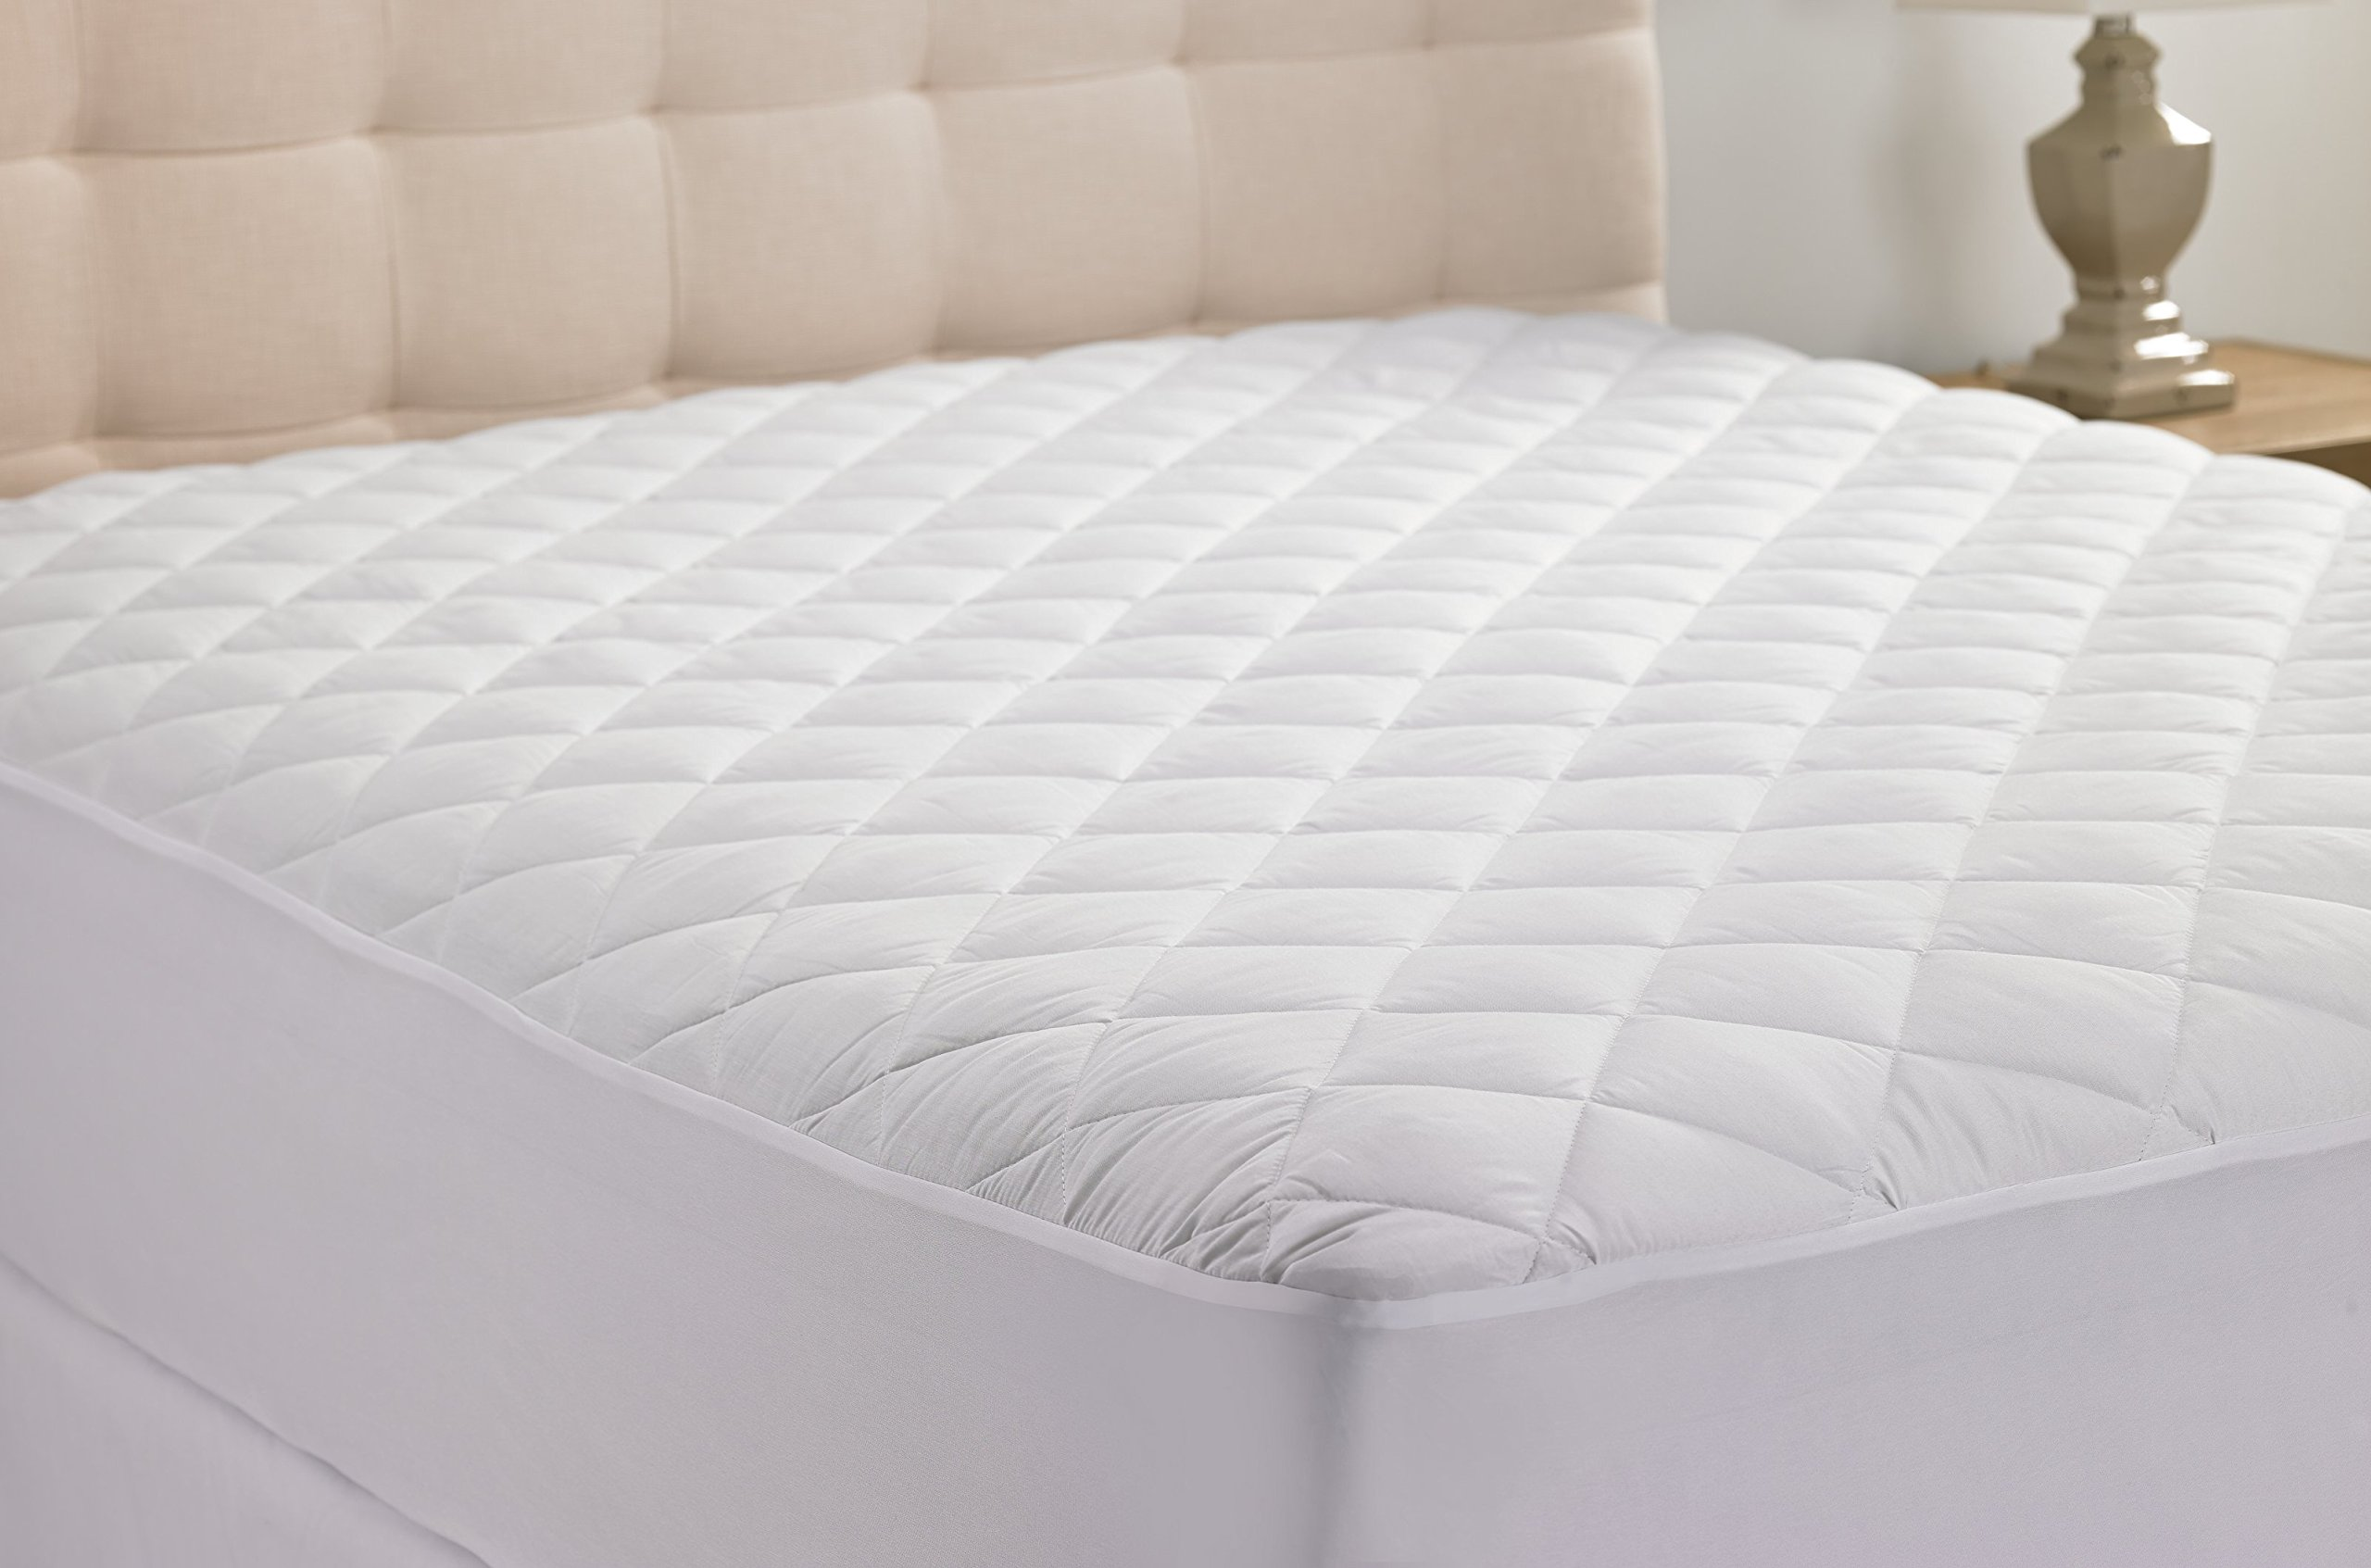 protection making comfortable your cannon decor total queen size pad cute you mattress home cover